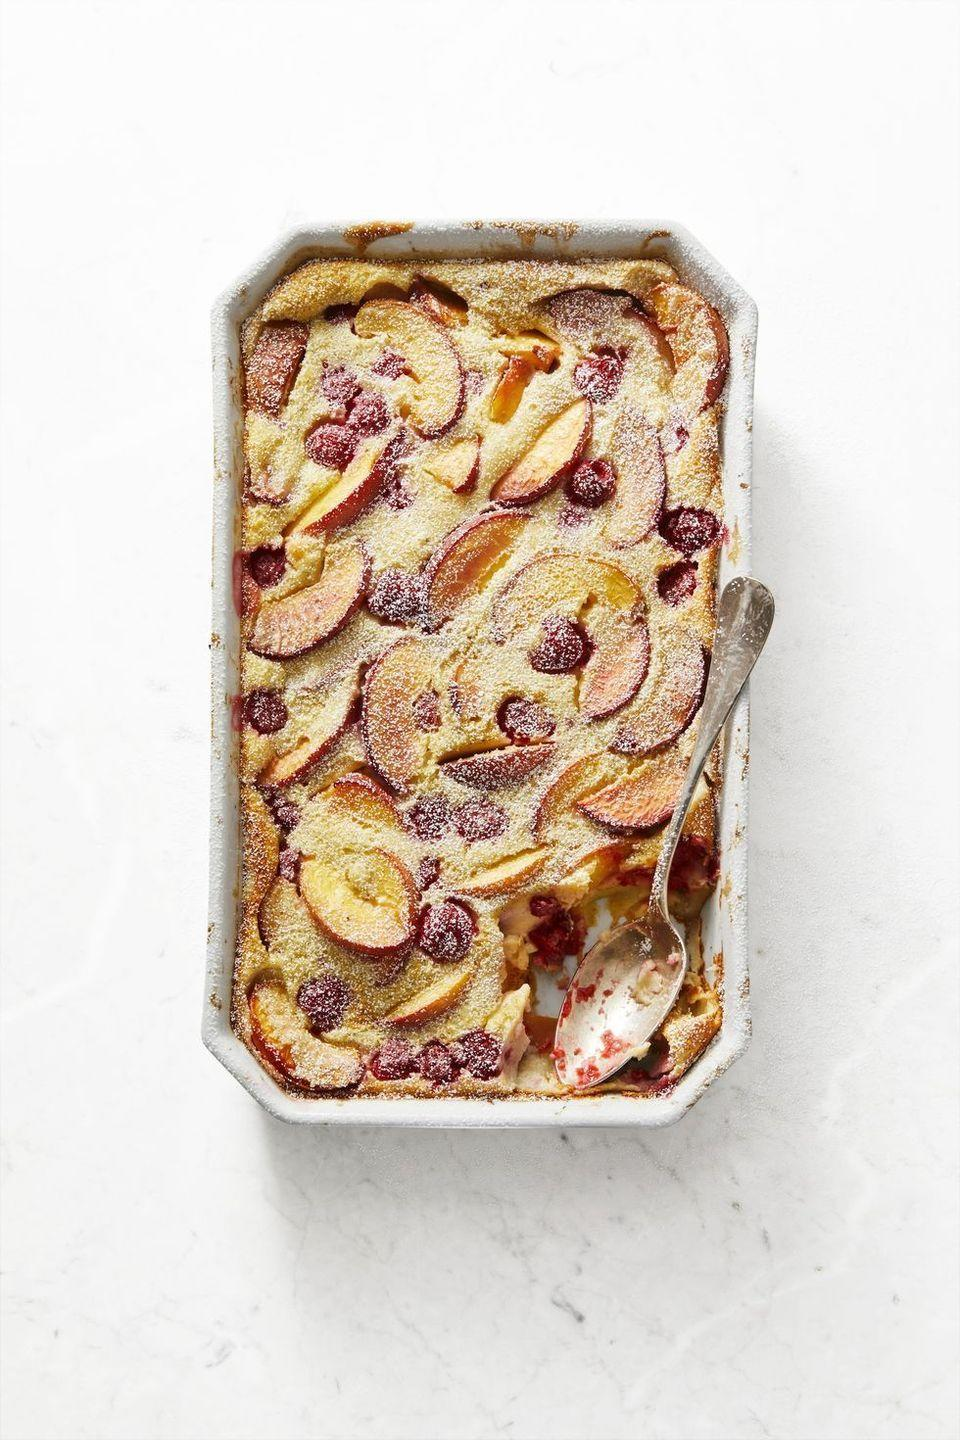 """<p>Pull out your blender to make this french pancake bake. Plus, the leftovers make for the perfect breakfast. </p><p><em><a href=""""https://www.goodhousekeeping.com/food-recipes/a28541890/vanilla-bean-clafoutis-with-raspberries-and-nectarines-recipe/"""" rel=""""nofollow noopener"""" target=""""_blank"""" data-ylk=""""slk:Get the recipe for Vanilla Bean Clafoutis with Raspberries and Nectarines »"""" class=""""link rapid-noclick-resp"""">Get the recipe for Vanilla Bean Clafoutis with Raspberries and Nectarines »</a></em></p>"""